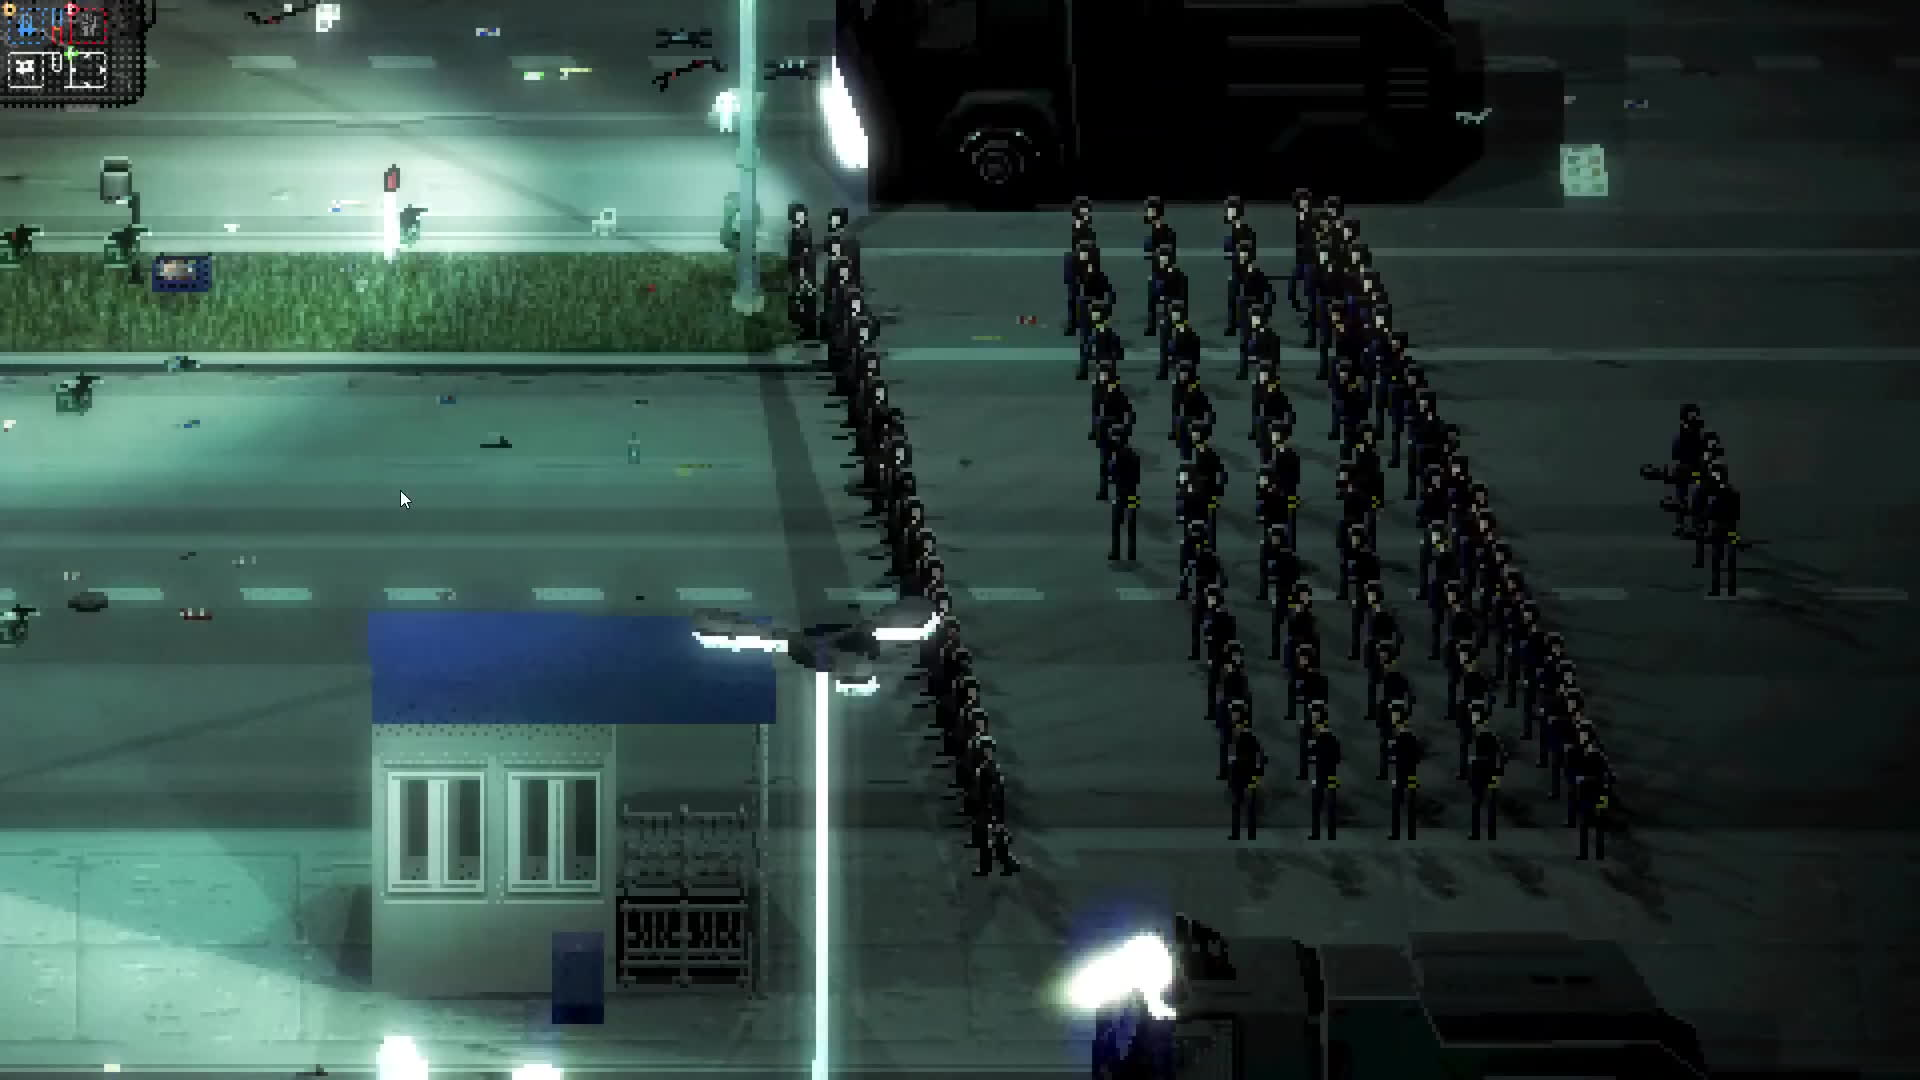 civil, game, games, linux, mac, merge, osx, pax, pc, playstation, riot, sim, simulation, unrest, xbox, RIOT - Civil Unrest (Gameplay from PAX East 2016) GIFs